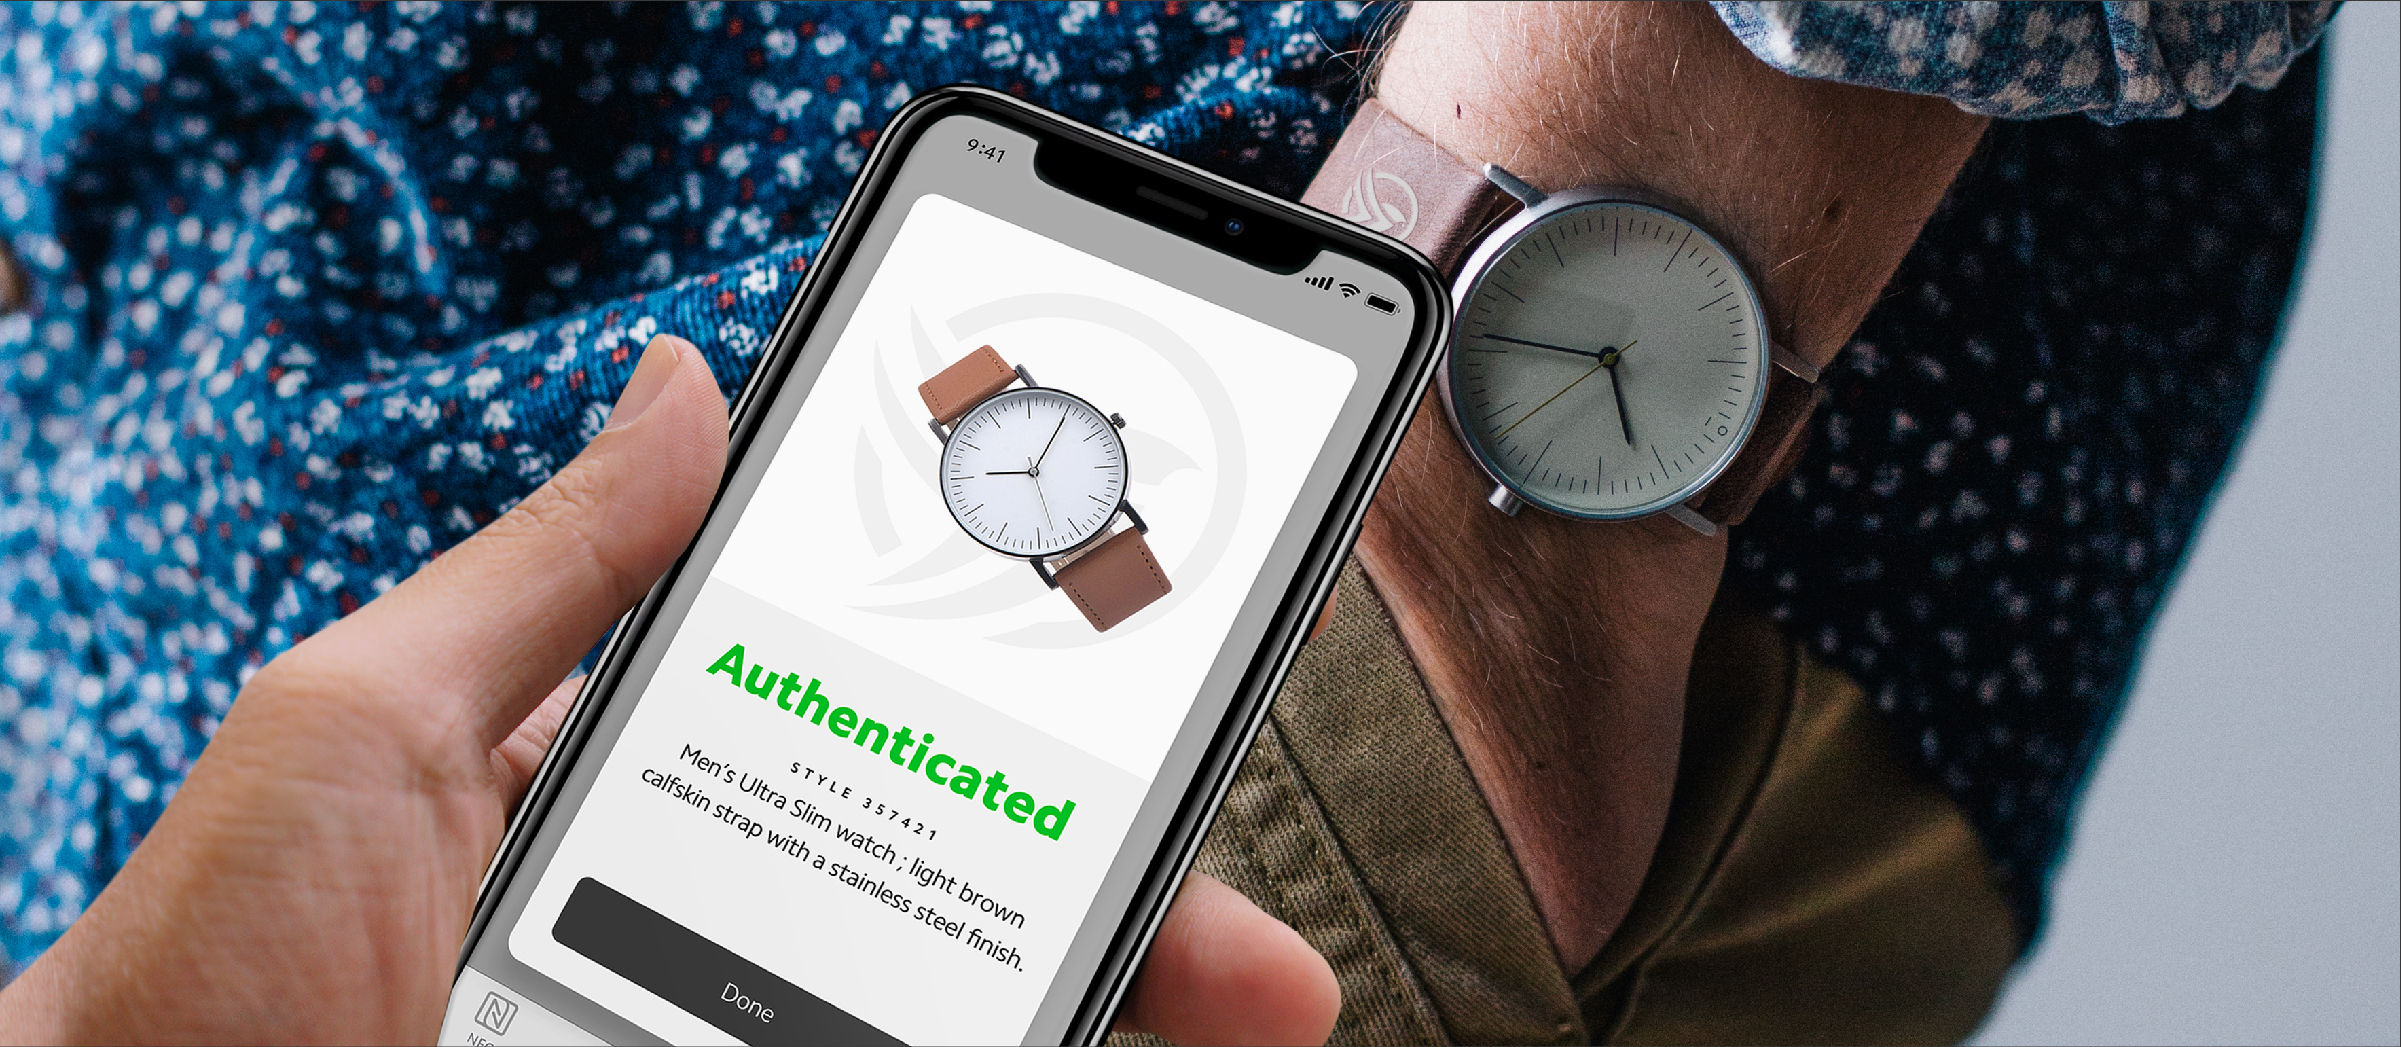 NFC authenticates products